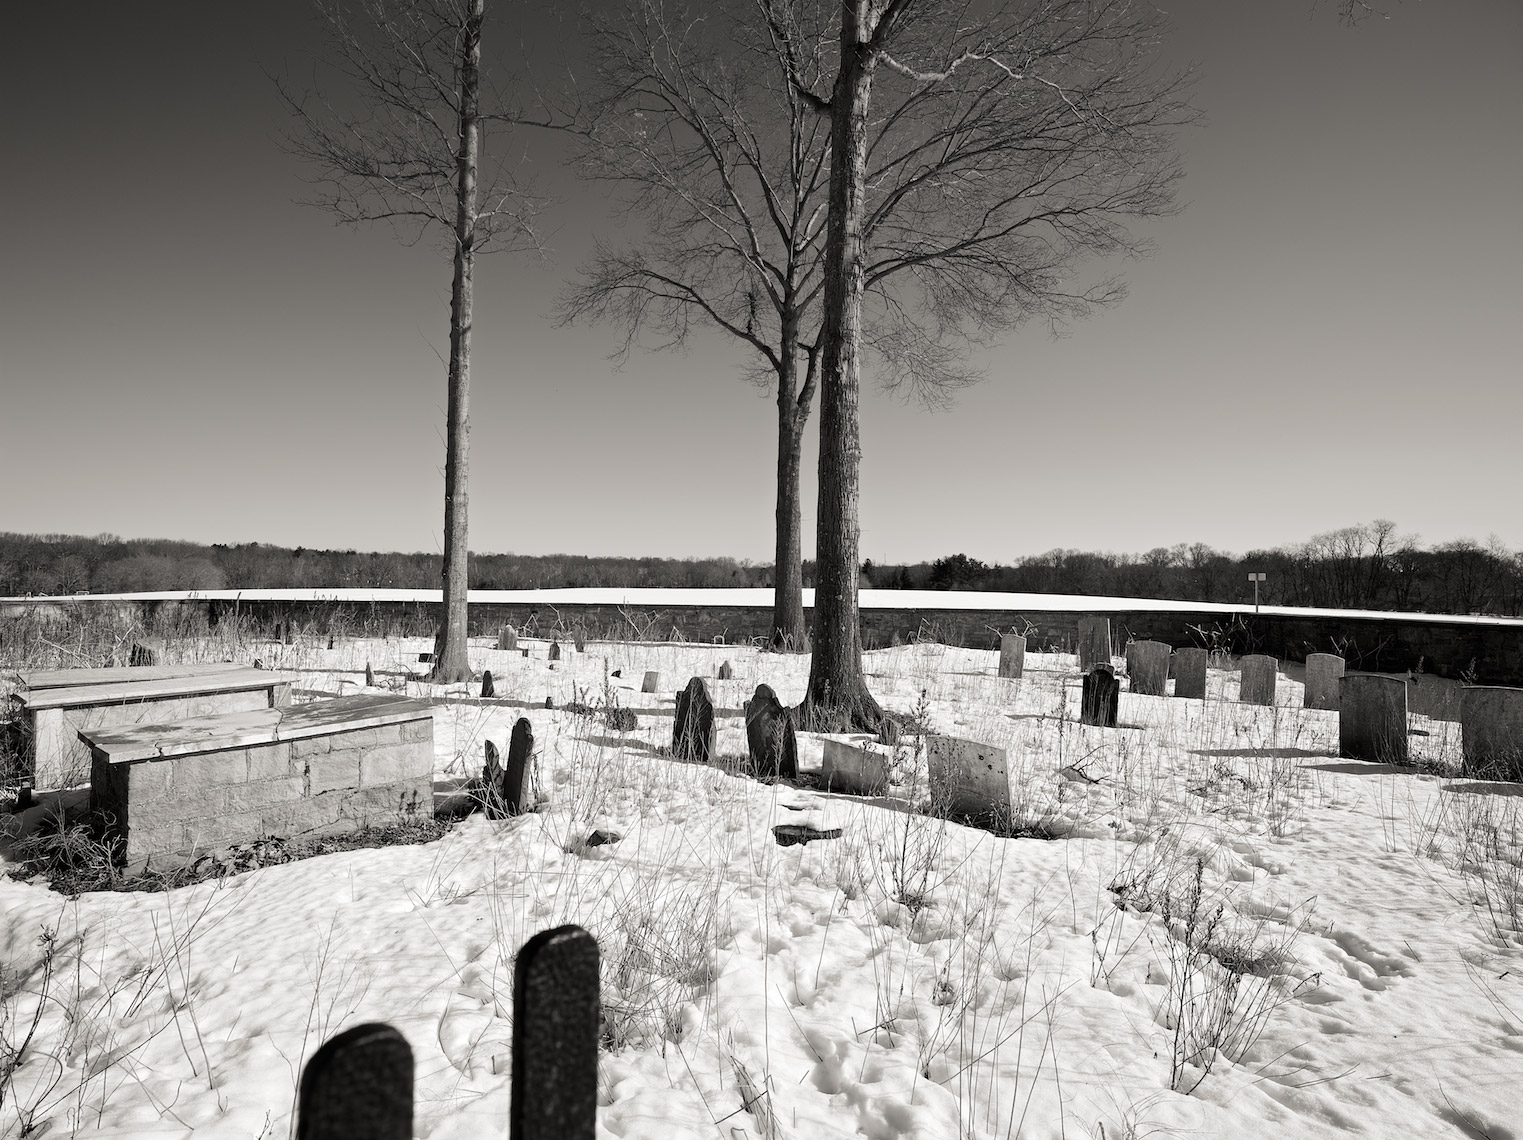 The Buffer - Cemetery, Washington Road, Princeton, NJ